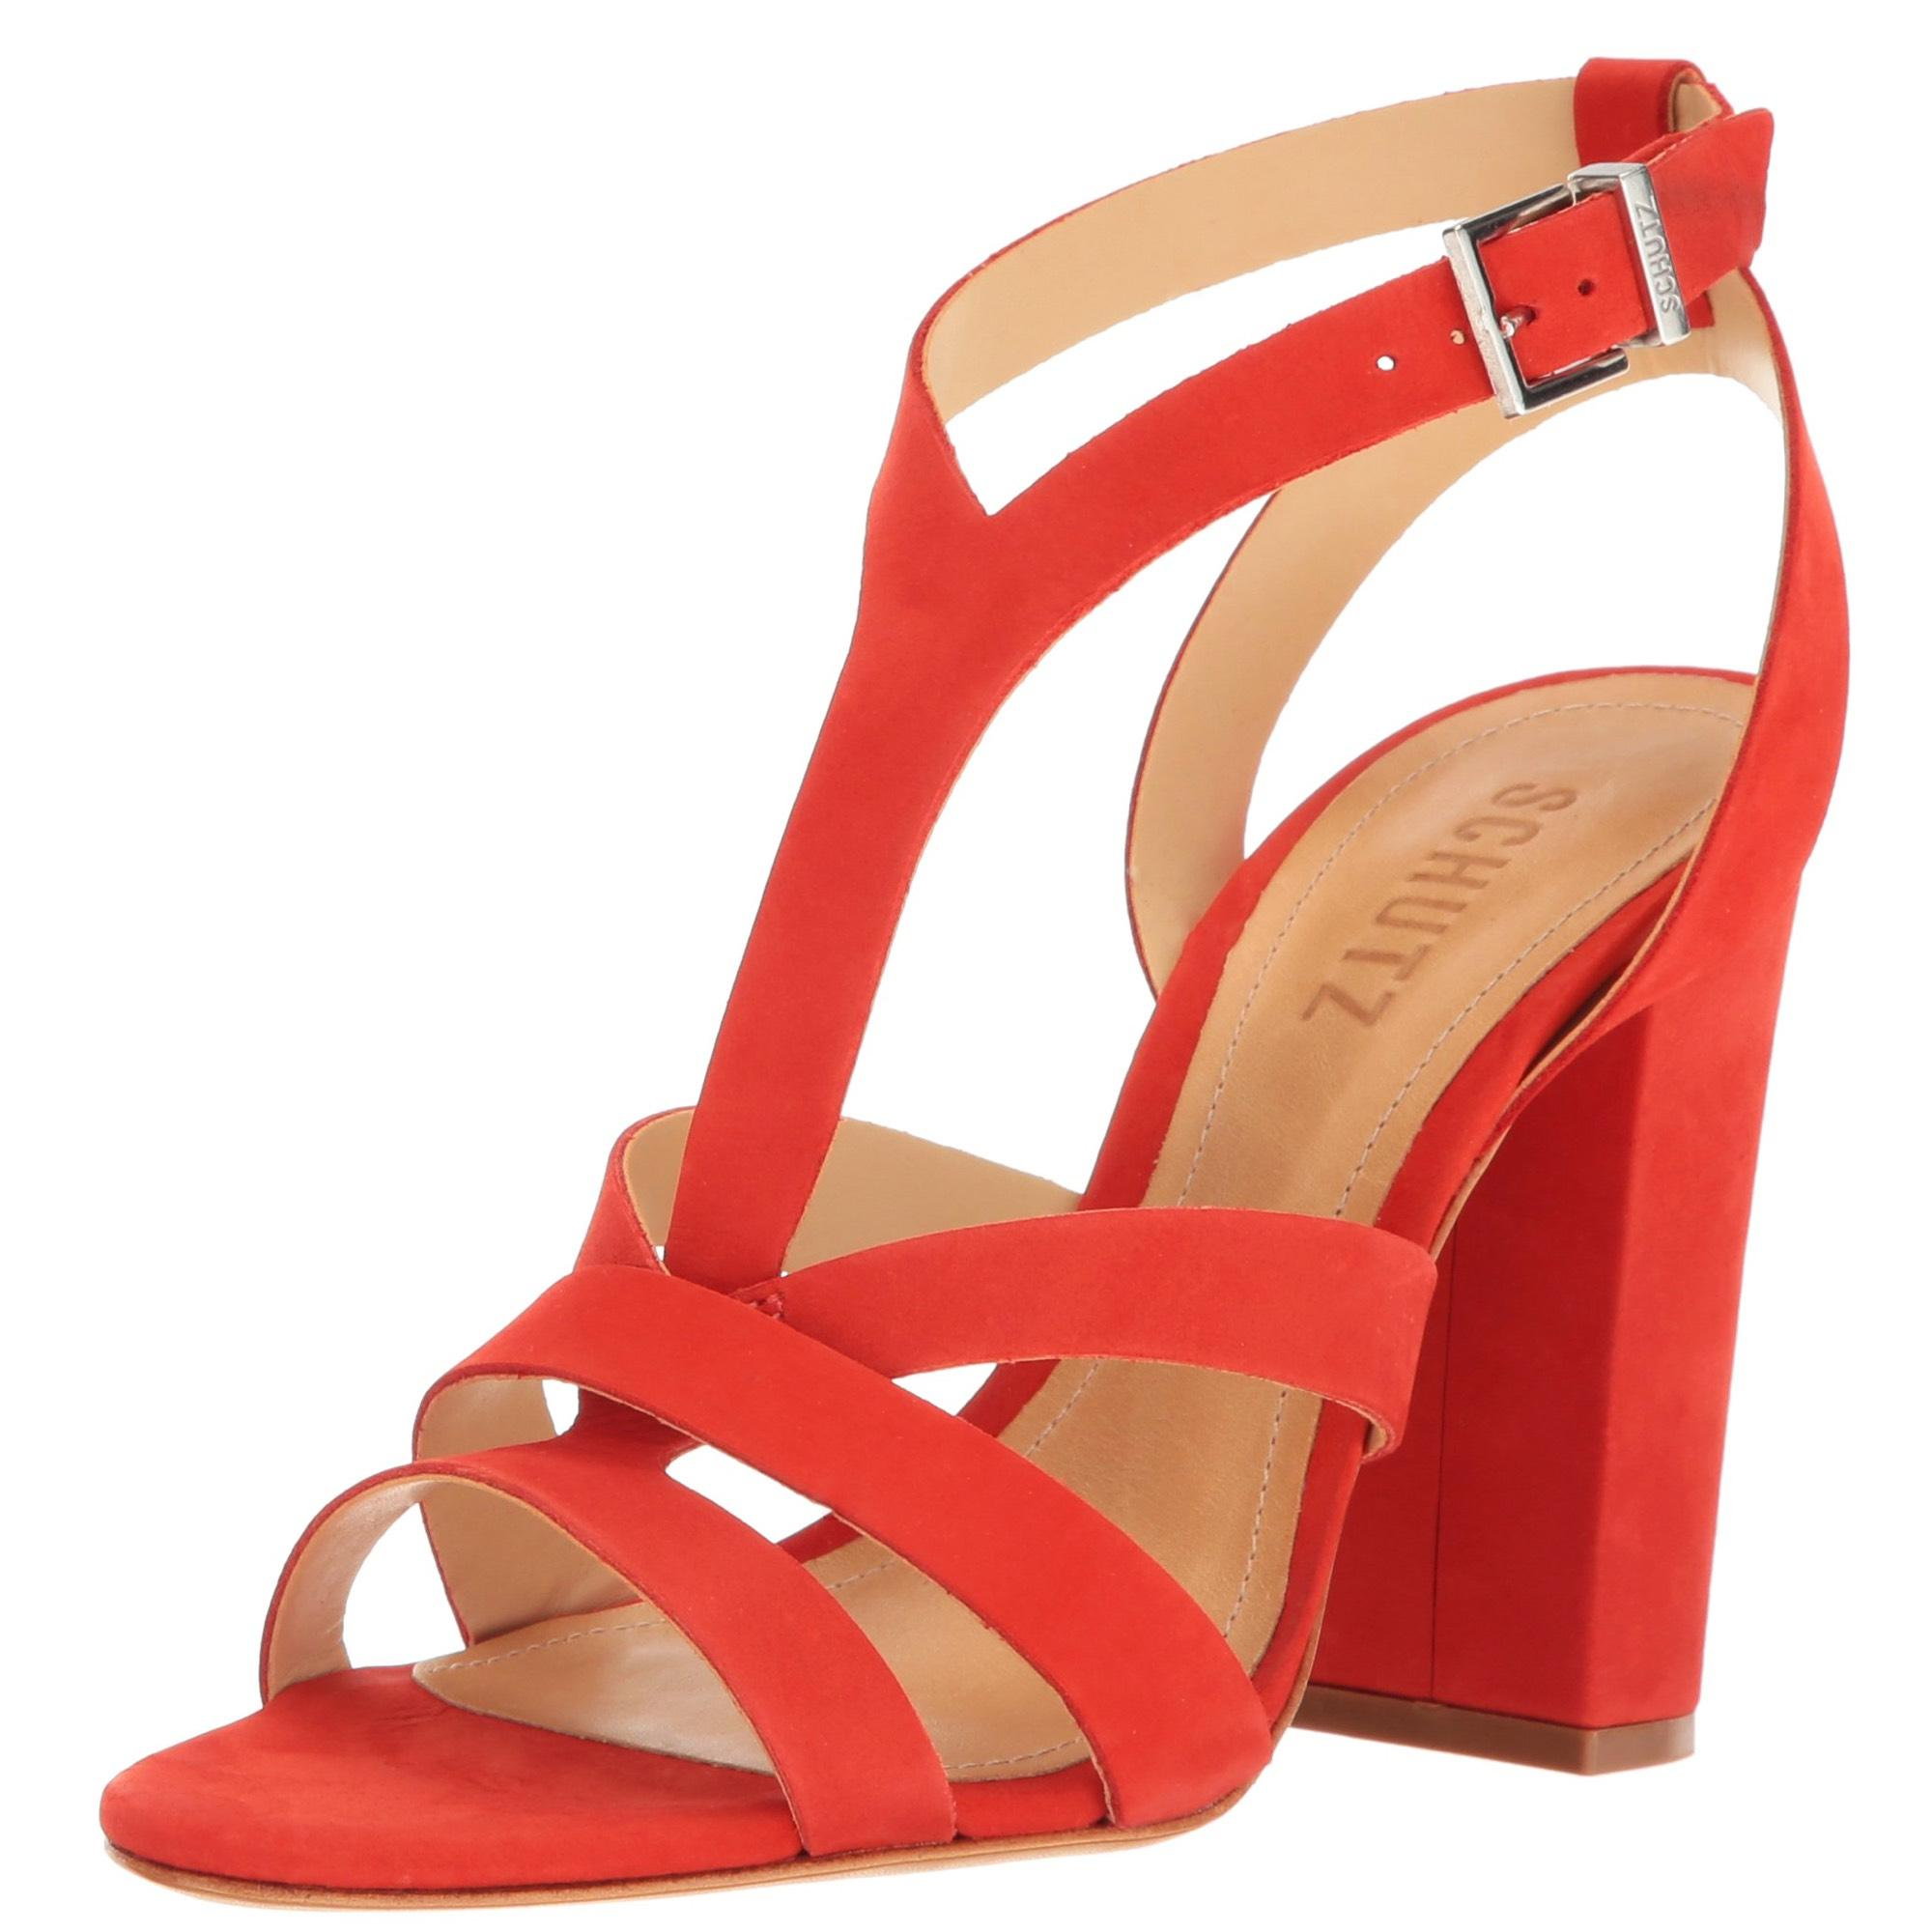 Schutz Strappy high heel sandals otpSlMJk2